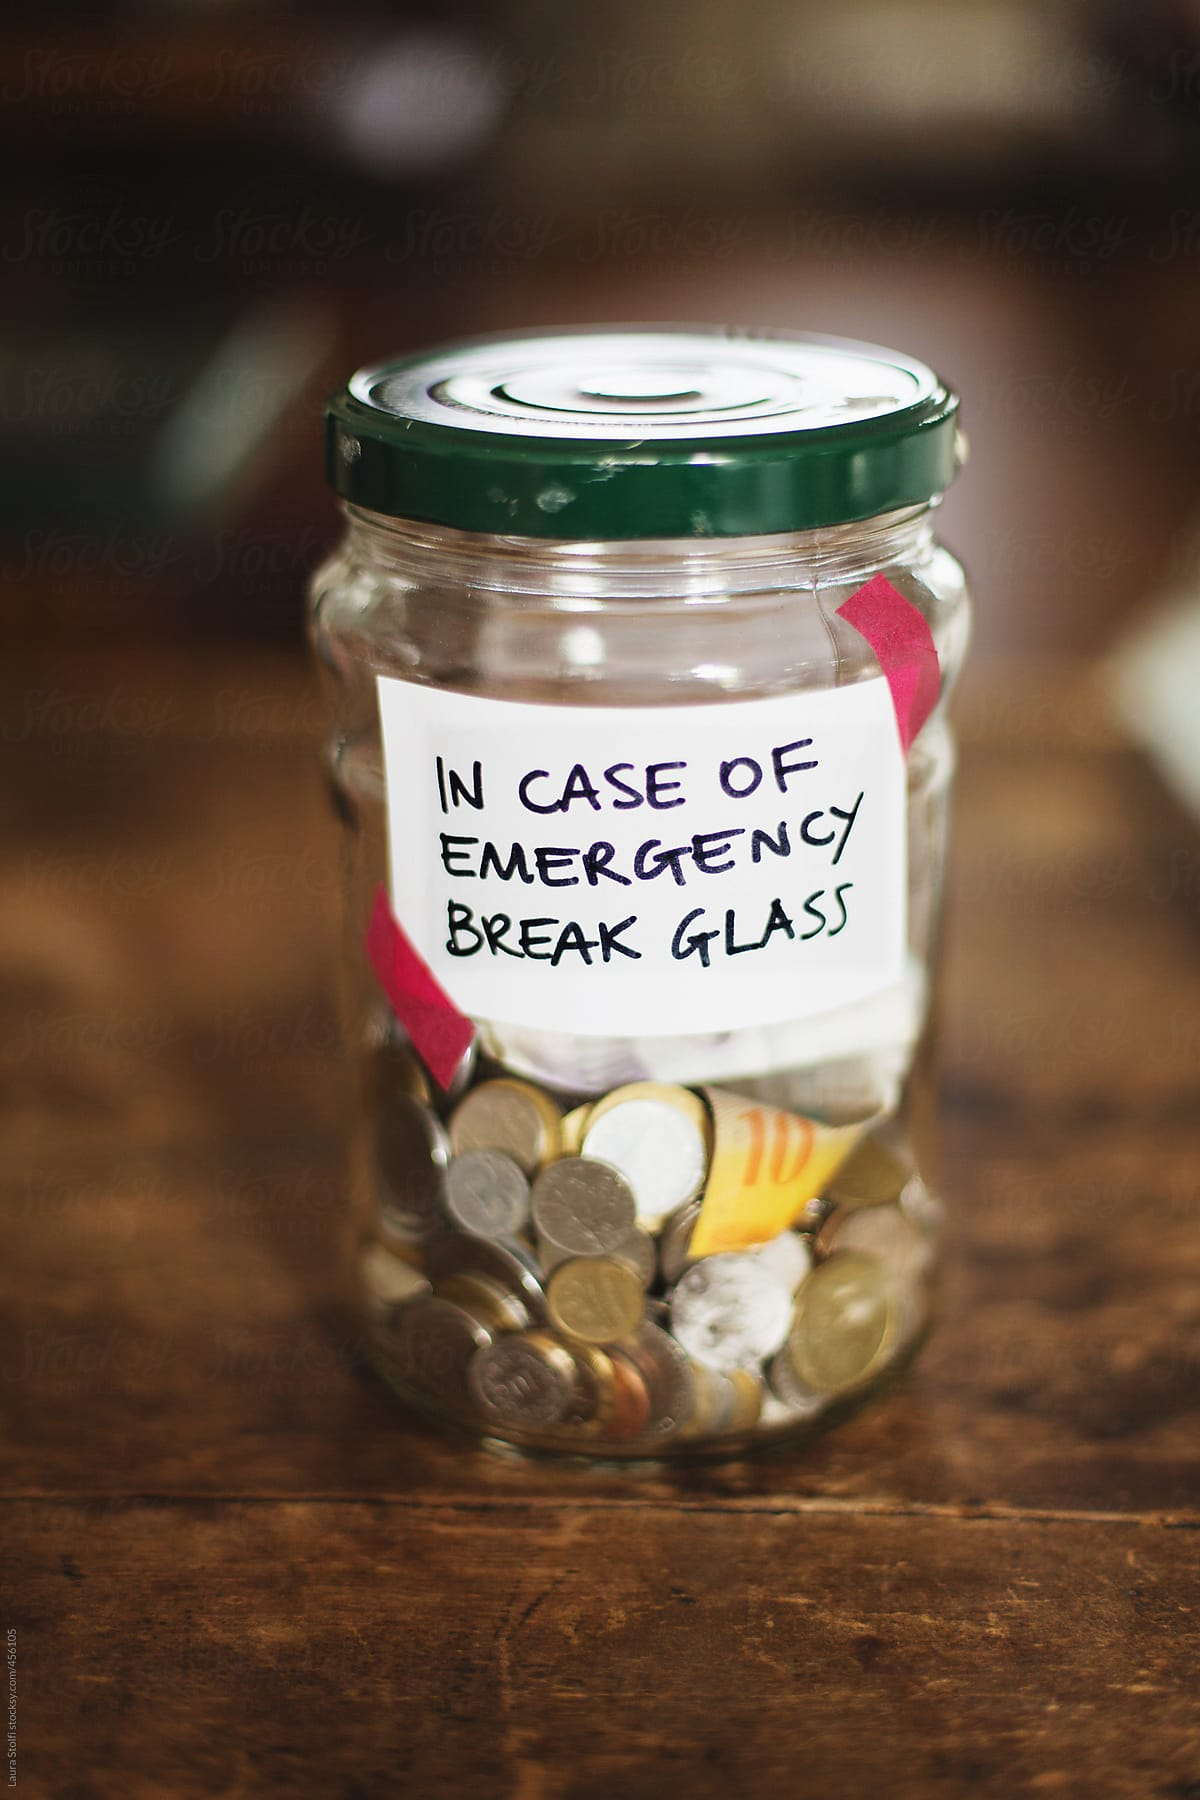 Money Saving In Jar With Label Saying In Case Of Emergency Break